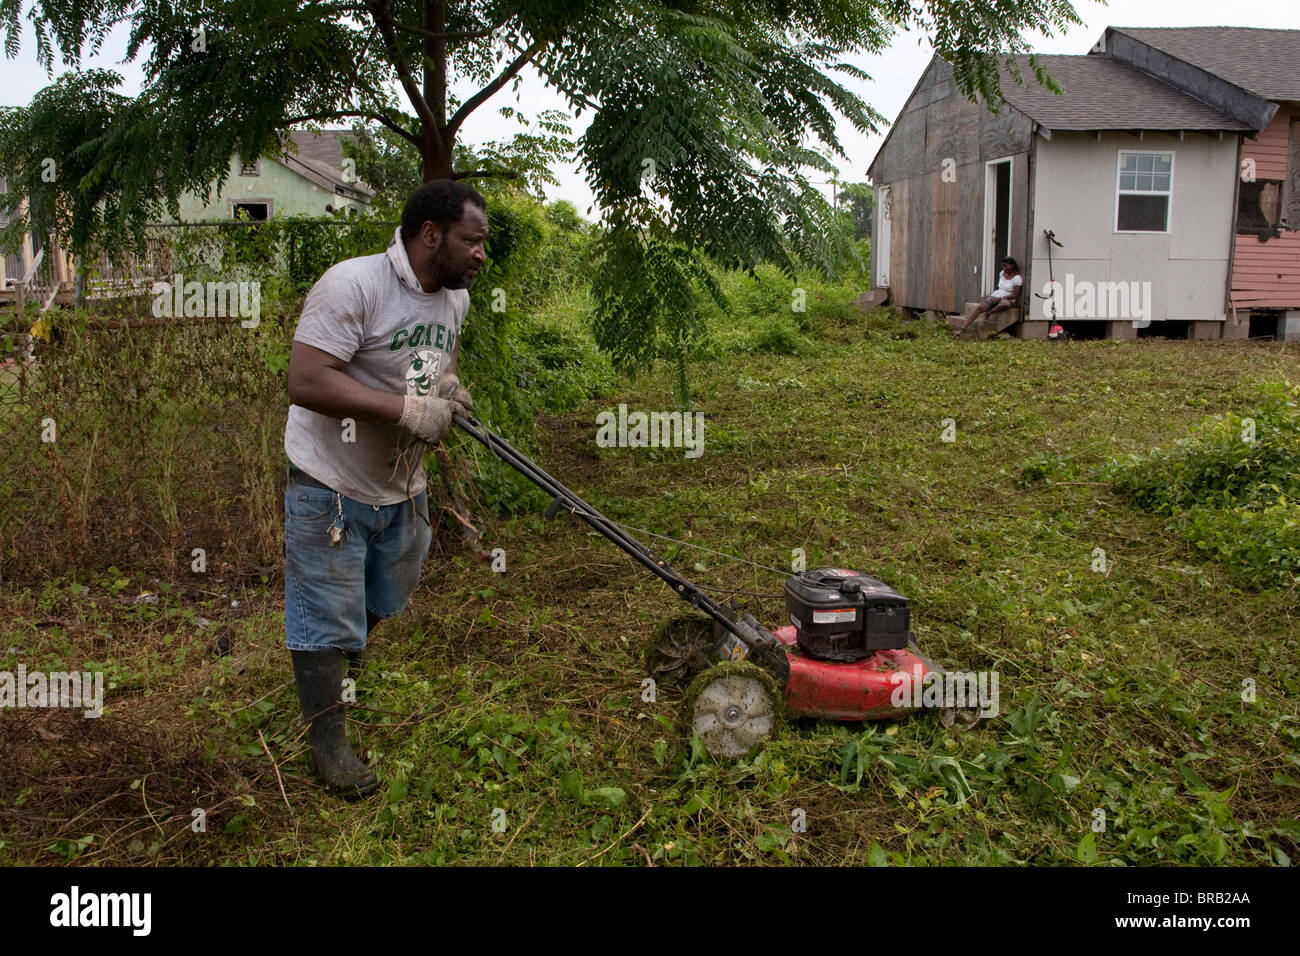 A man cuts weeds from the from yard of his partially rebuilt home in New Orleans, Louisiana's Ninth Ward. - Stock Image